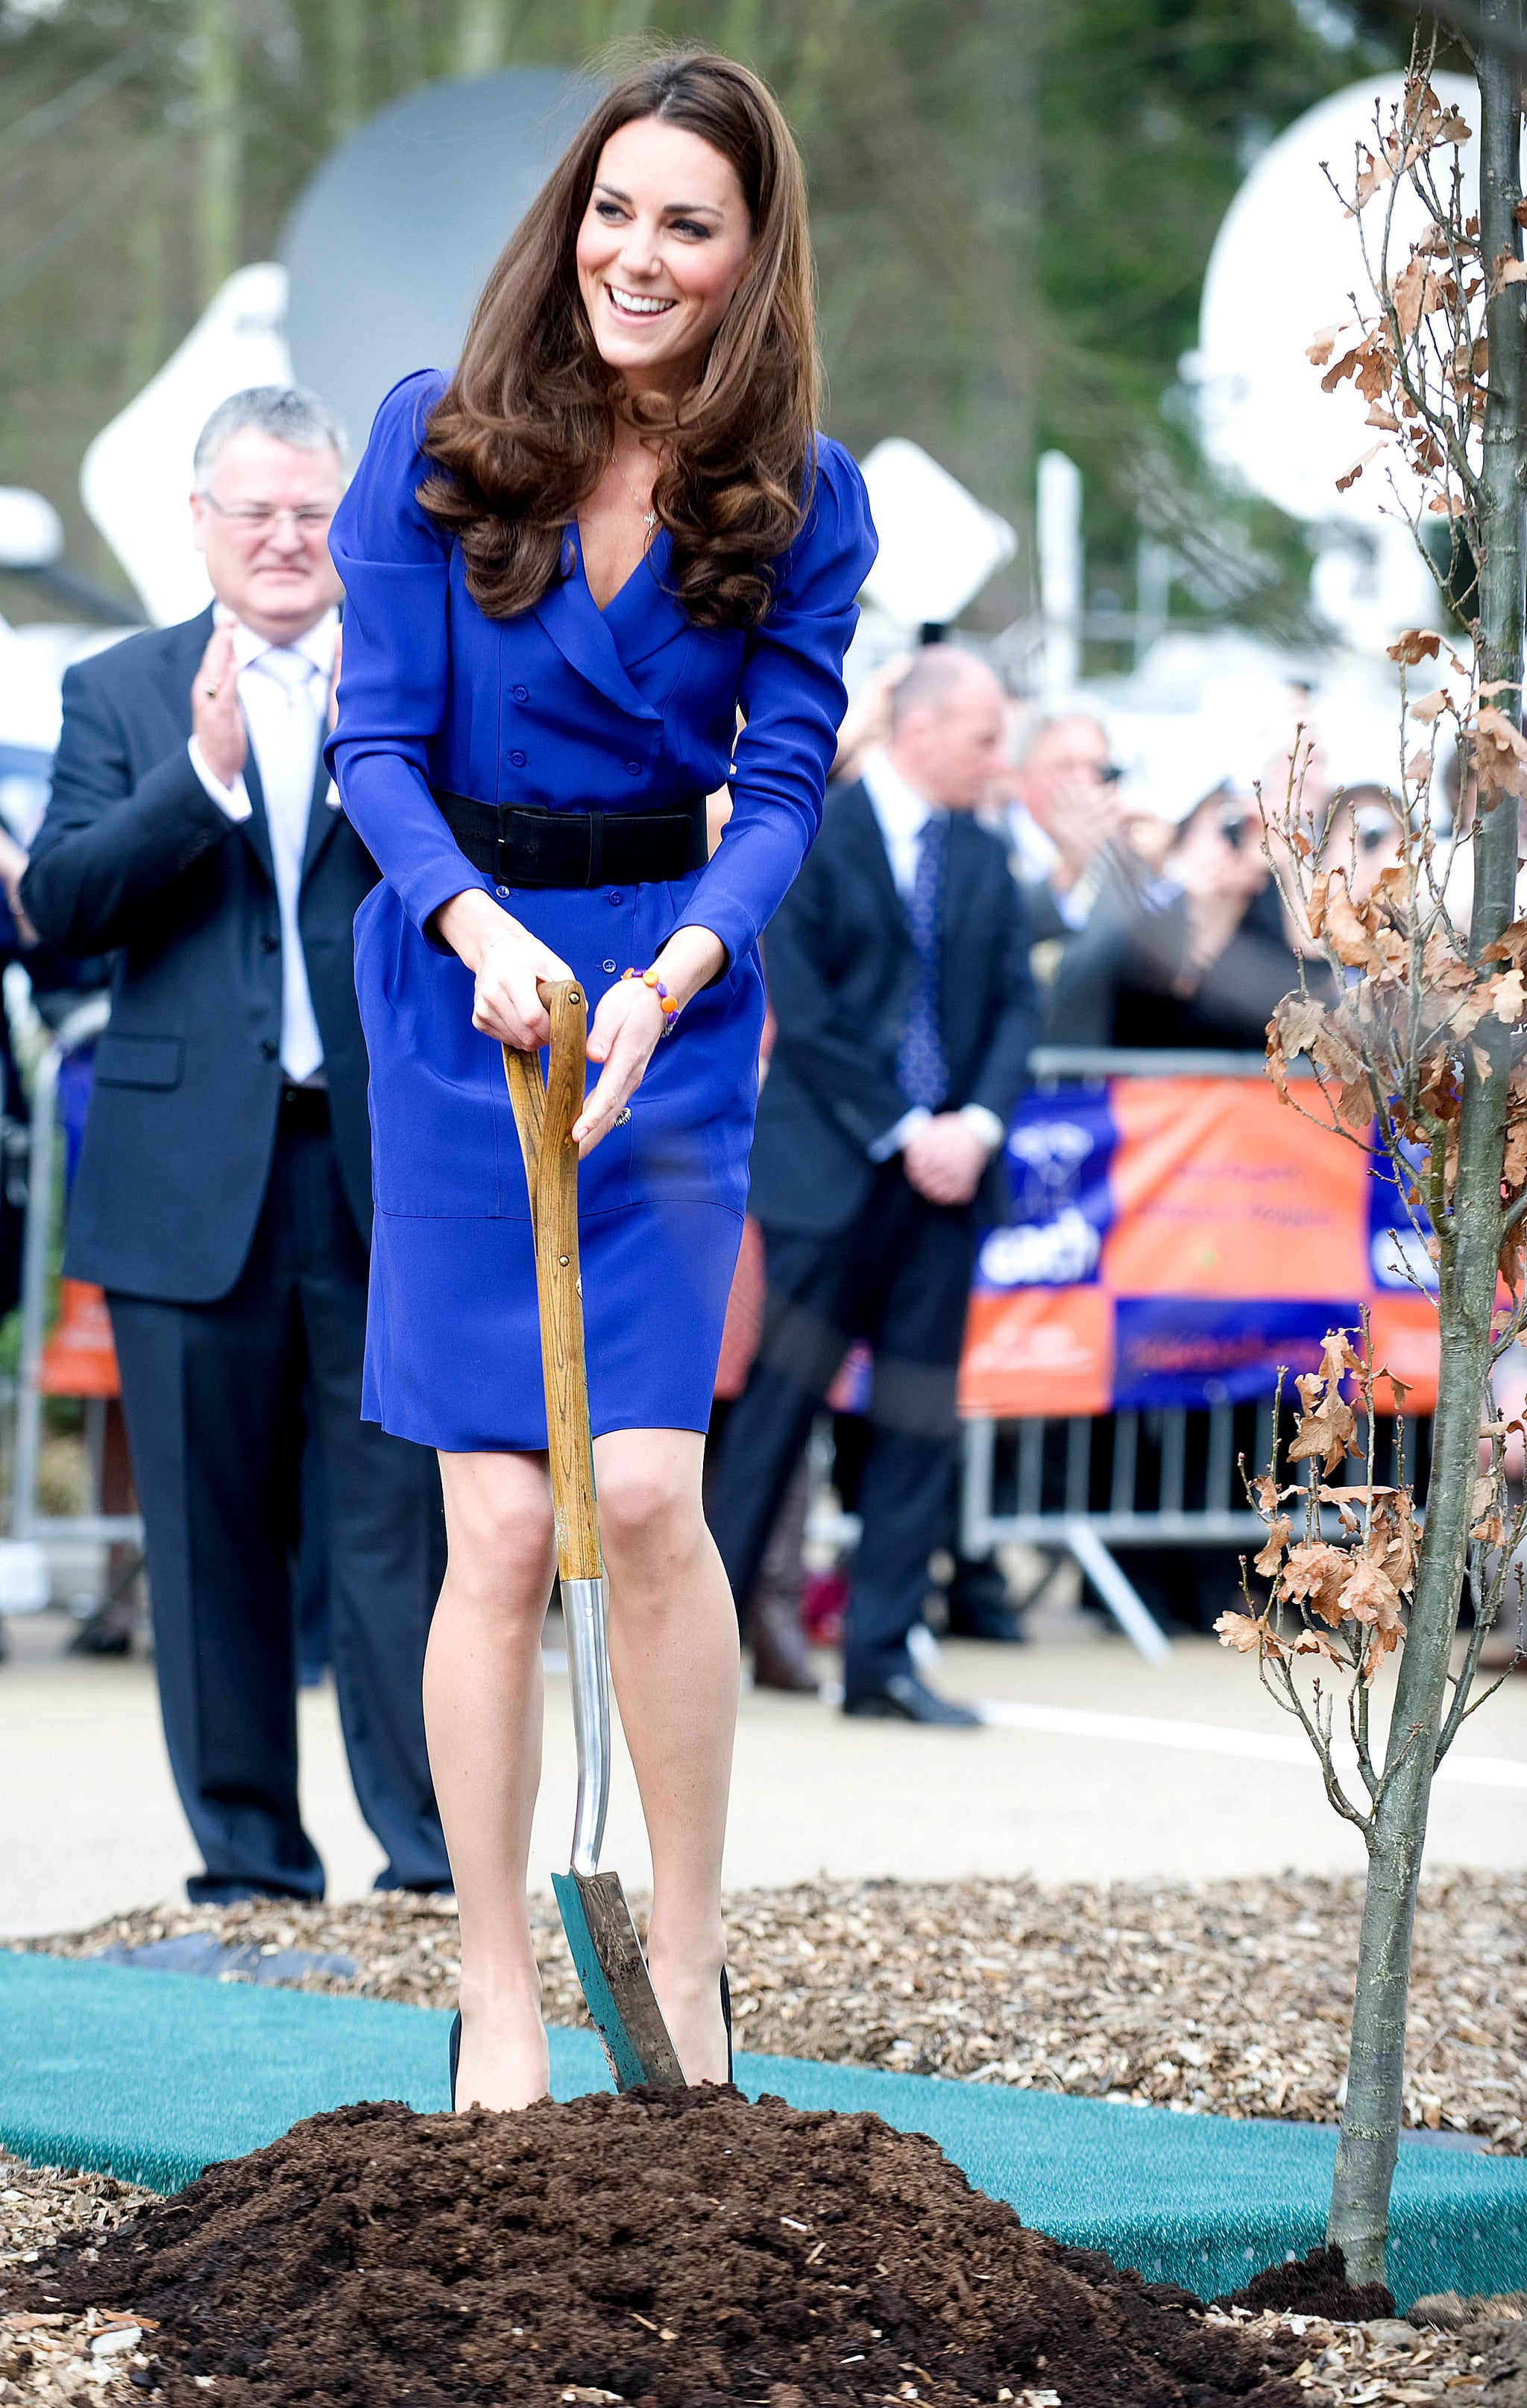 April 24: Tree Planting On their second-to-last day of their tour, Will and Kate will visit the National Arboretum, where they will plant trees and meet with local children and their parents. Before this, the couple will visit the National Portrait Gallery and then Parliament House, where William will give a speech. April 25: Goodbye, Australia (and Yes, More Trees) Before leaving Oz, Will and Kate will attend the ANZAC Day March and Commemorative Service at the Australian War Memorial, where they will — you guessed it — plant some more trees in the memorial garden. After saying goodbye to their hosts, the family will depart from Defence Establishment Fairbairn, Canberra, for London. Source: David Crump/AFP/Getty